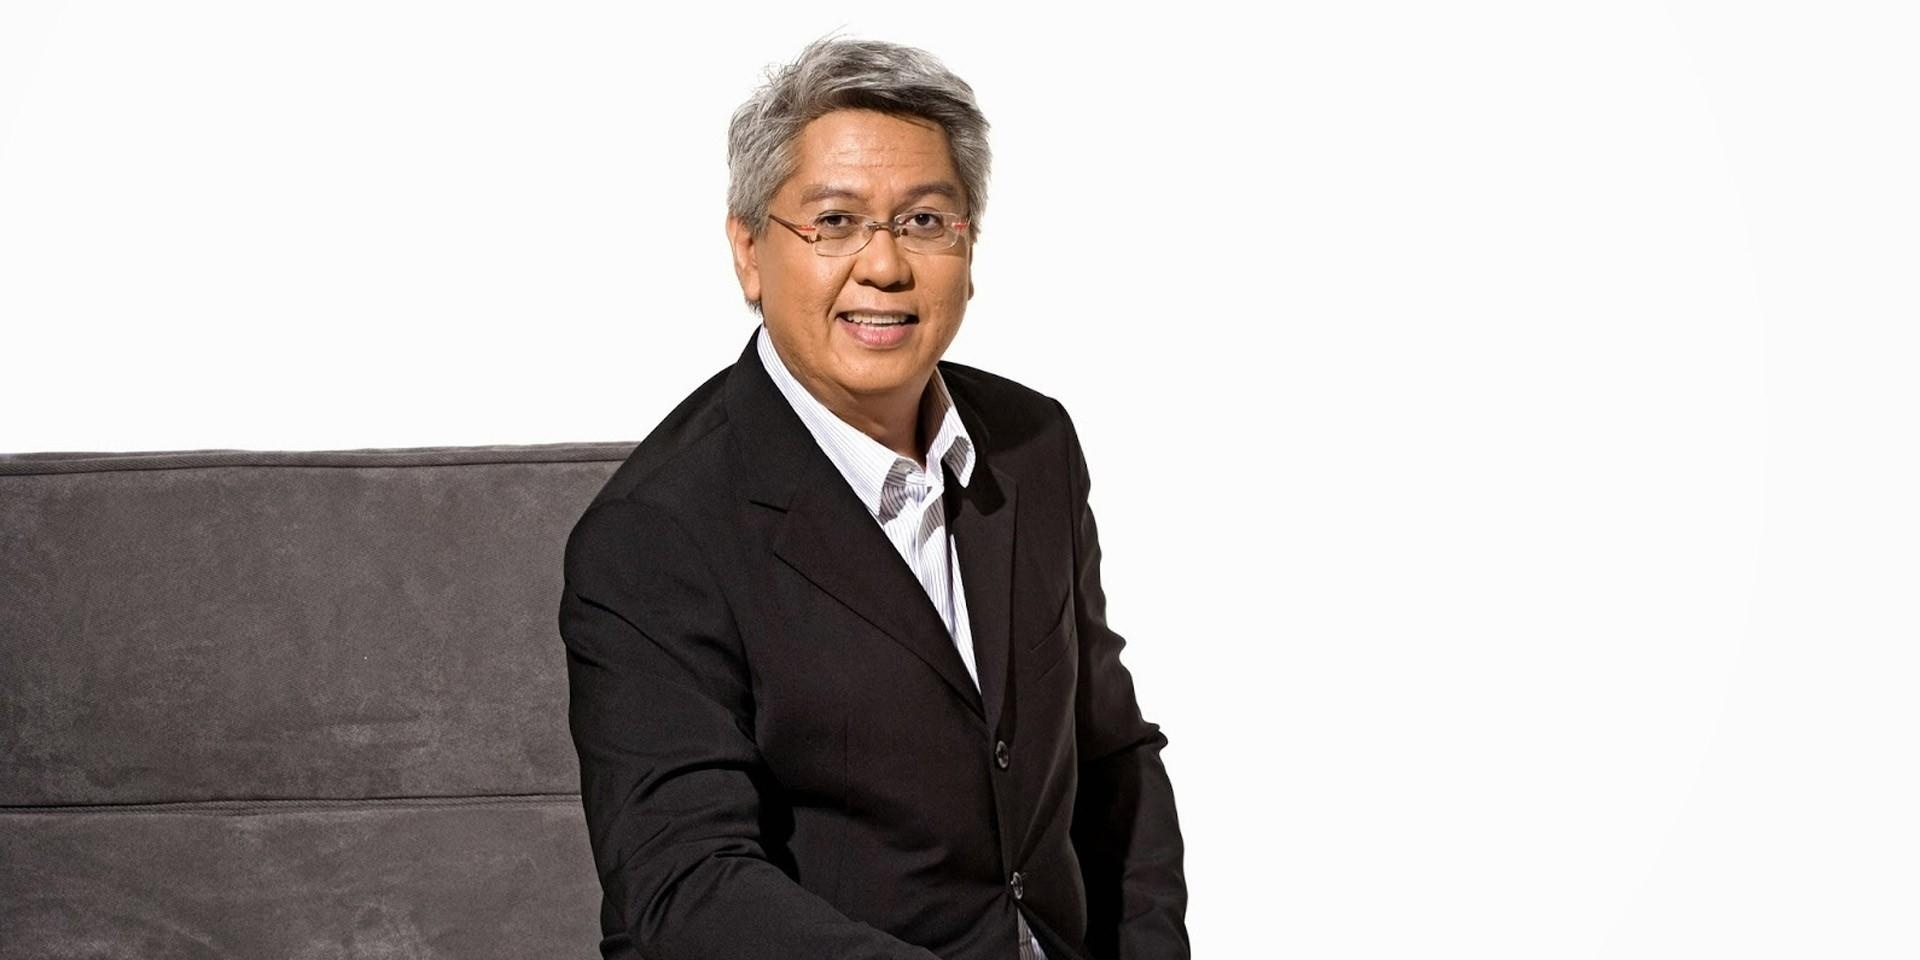 Ben&Ben, Martin Nievera, Rony Fortich, and more to tribute to Maestro Ryan Cayabyab at Ryan Ryan Musikwentuhan